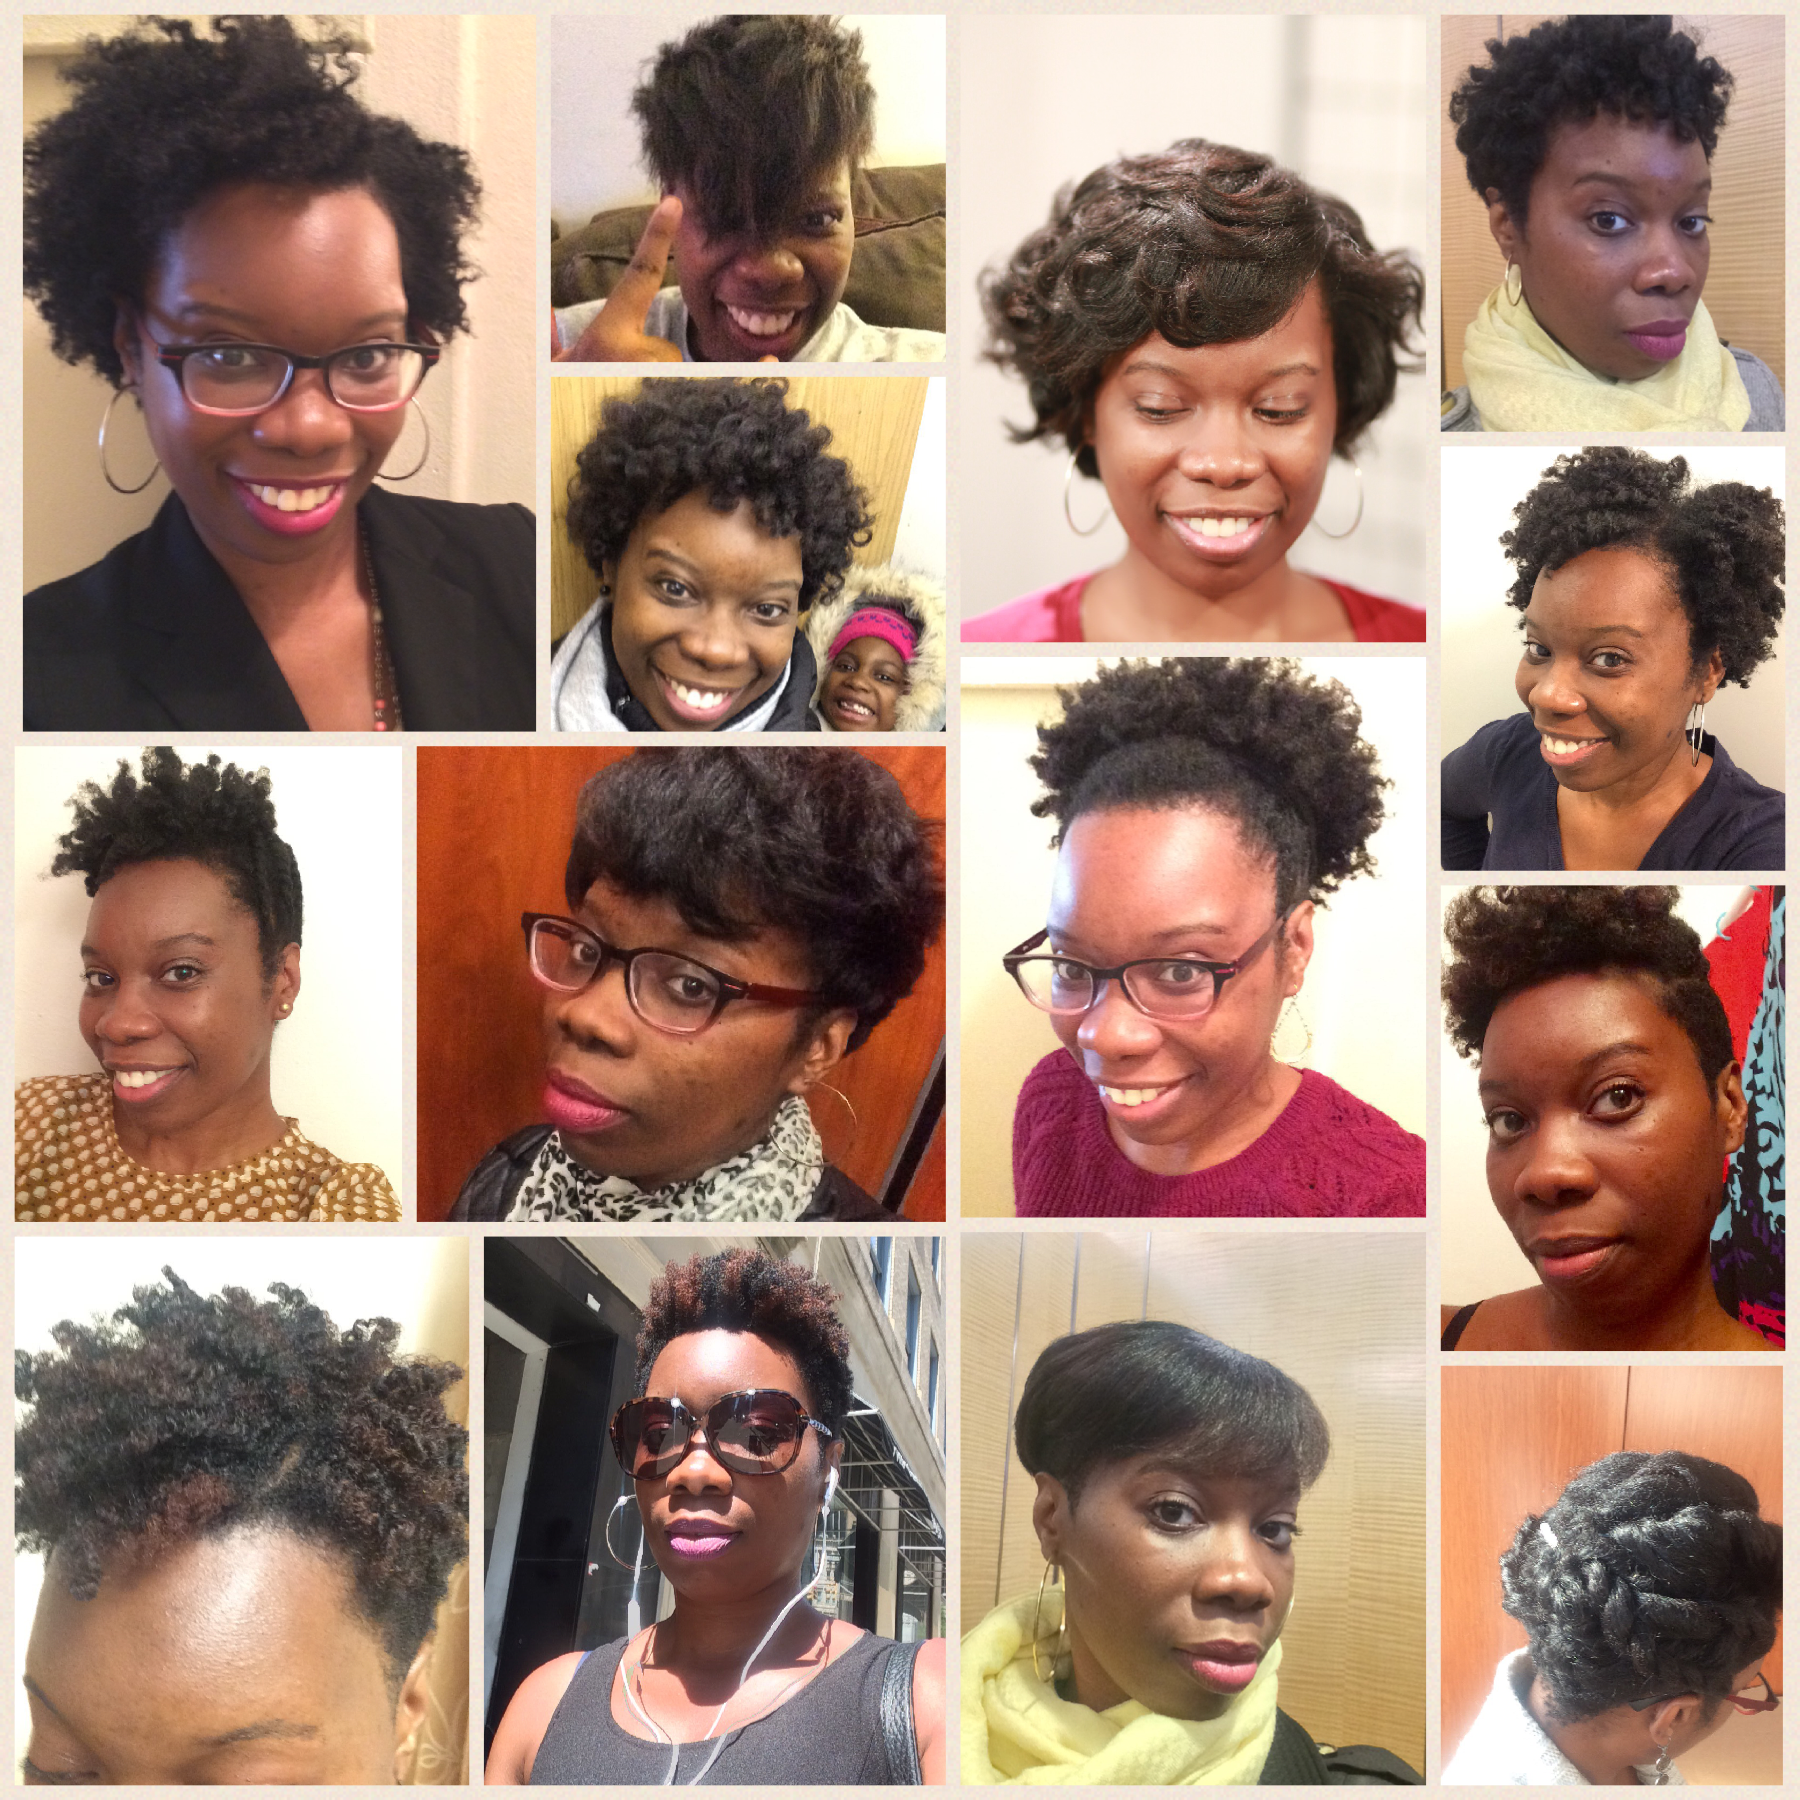 The various hairstyles of simplykatricia